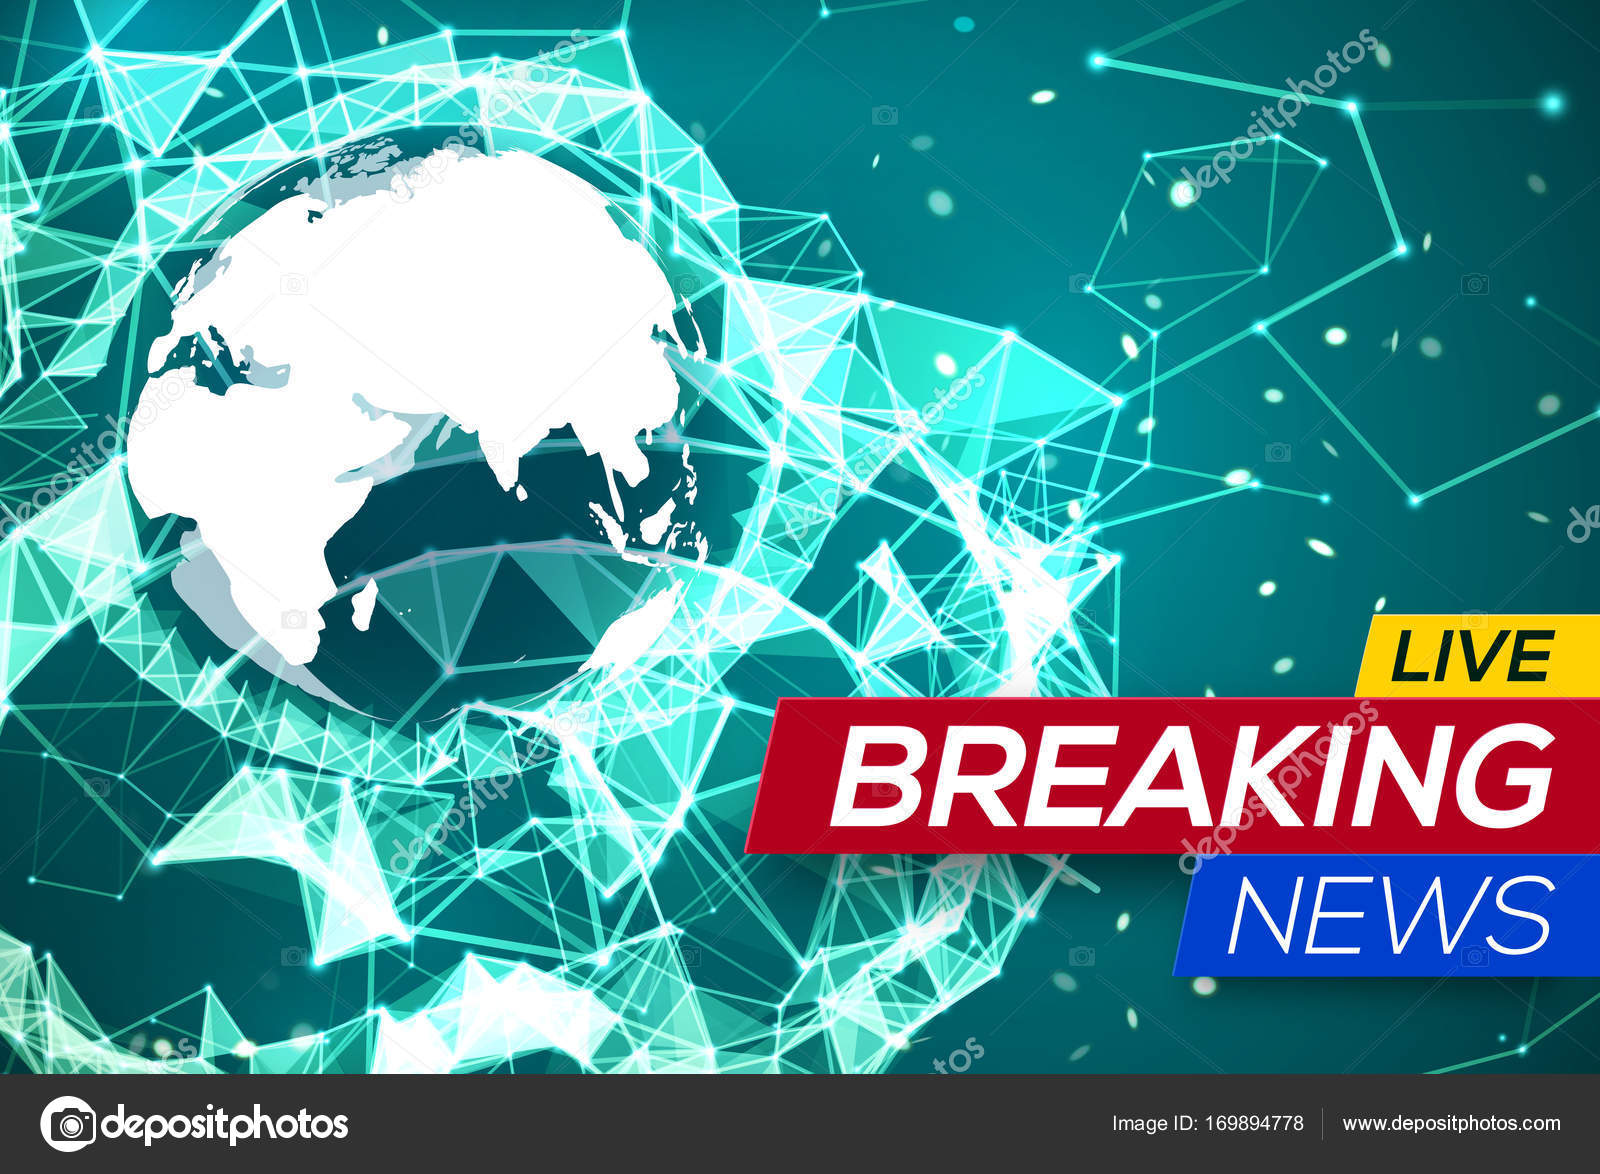 Breaking news live with world map africa and europe on green breaking news live with world map africa and europe on green structure background business technology gumiabroncs Choice Image